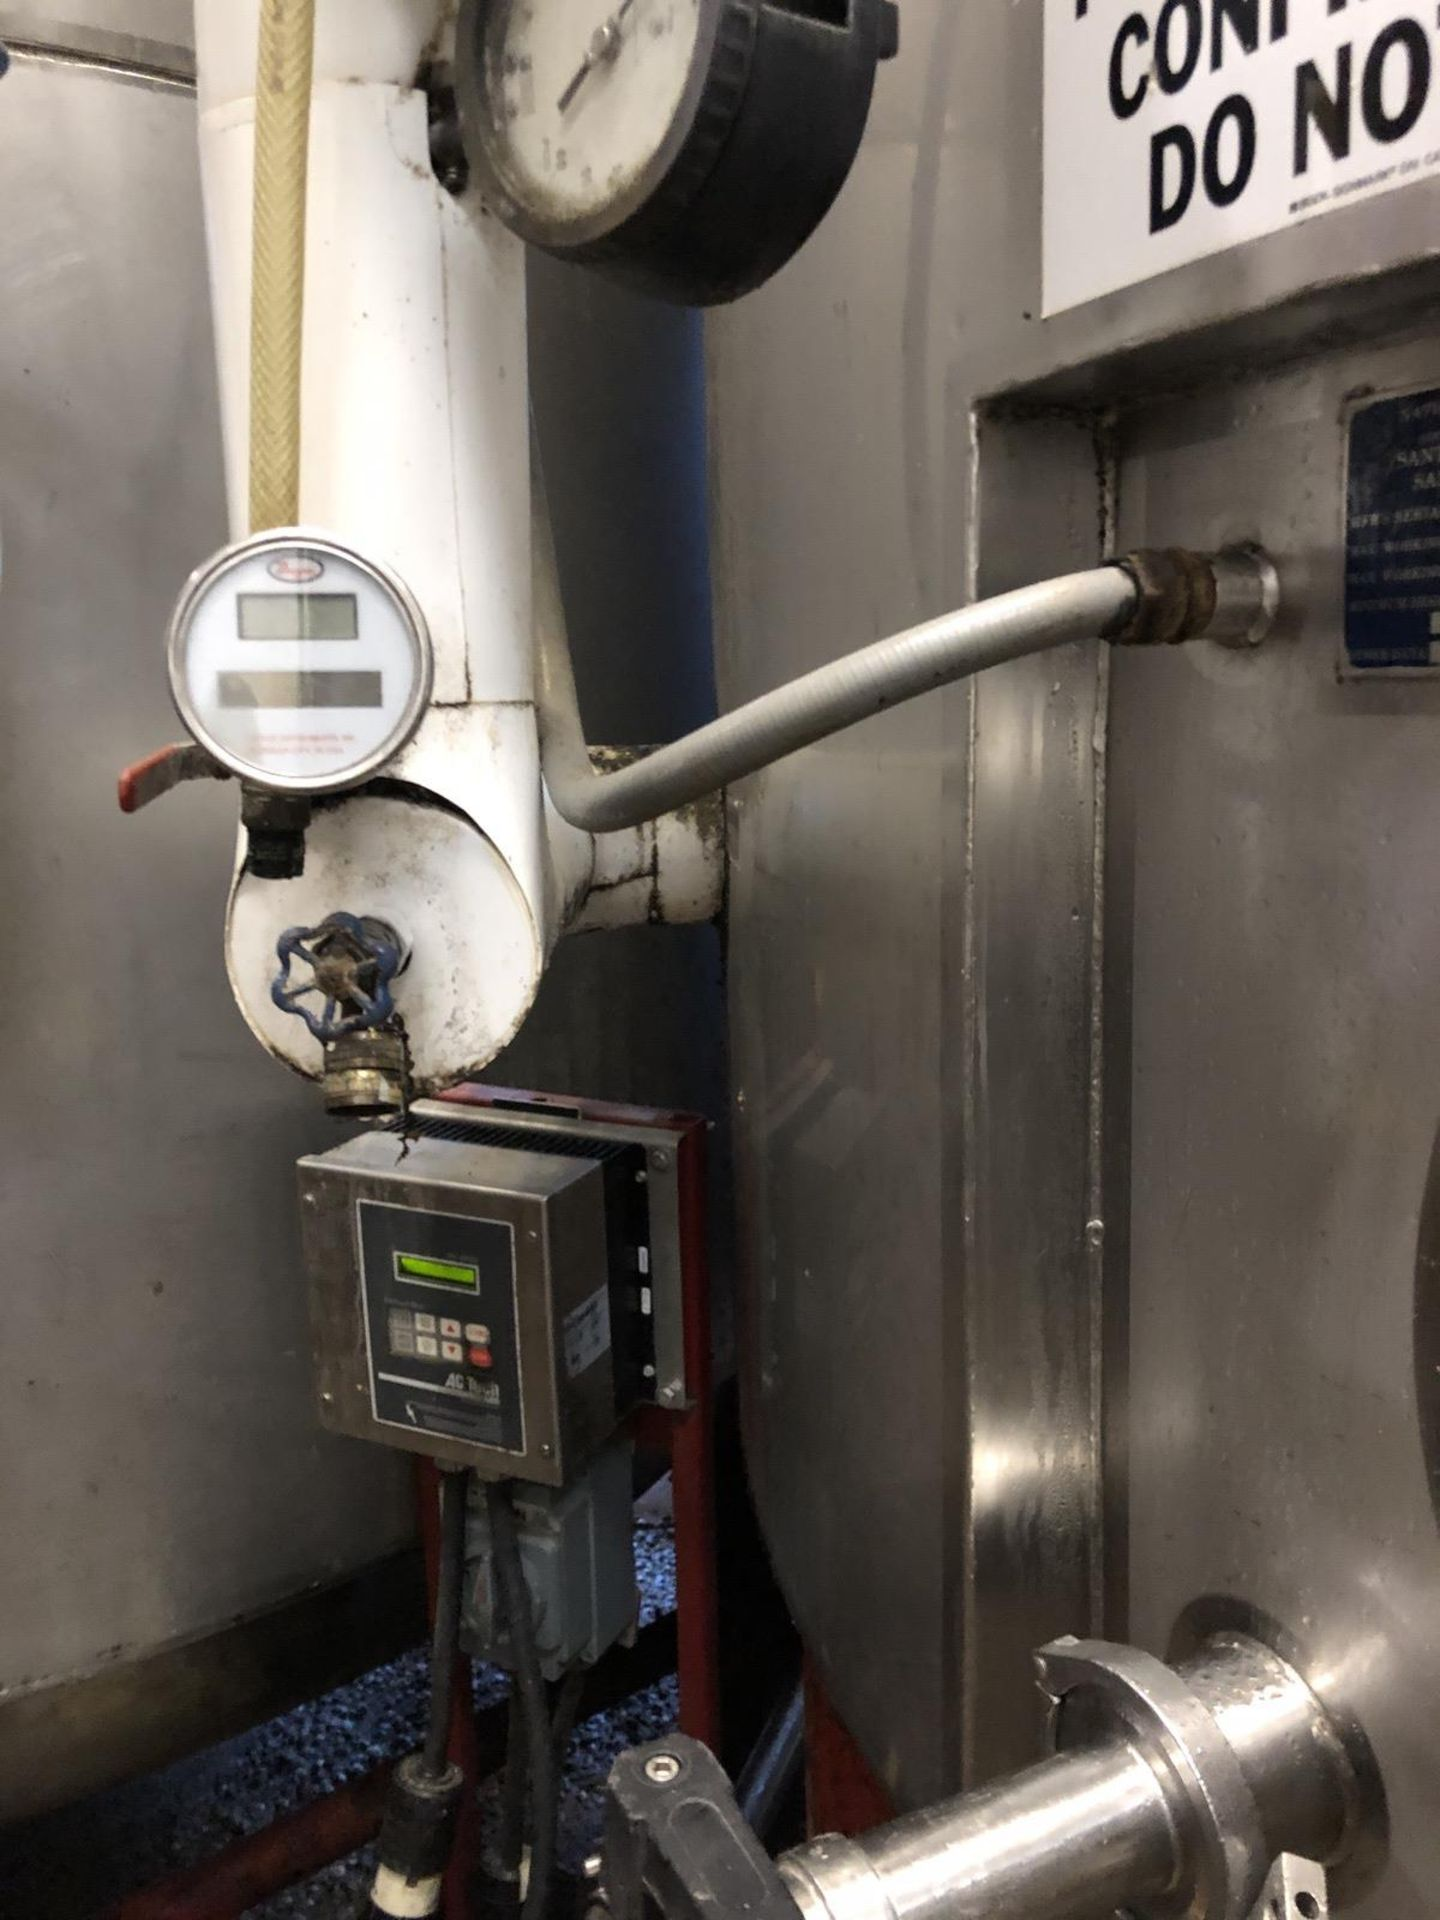 Lot 14 - Santa Rosa 100 BBL Brite Tank, Dish Bottom, Dome Top, Glycol Jacketed, Stainless St | Rig Fee: $1750